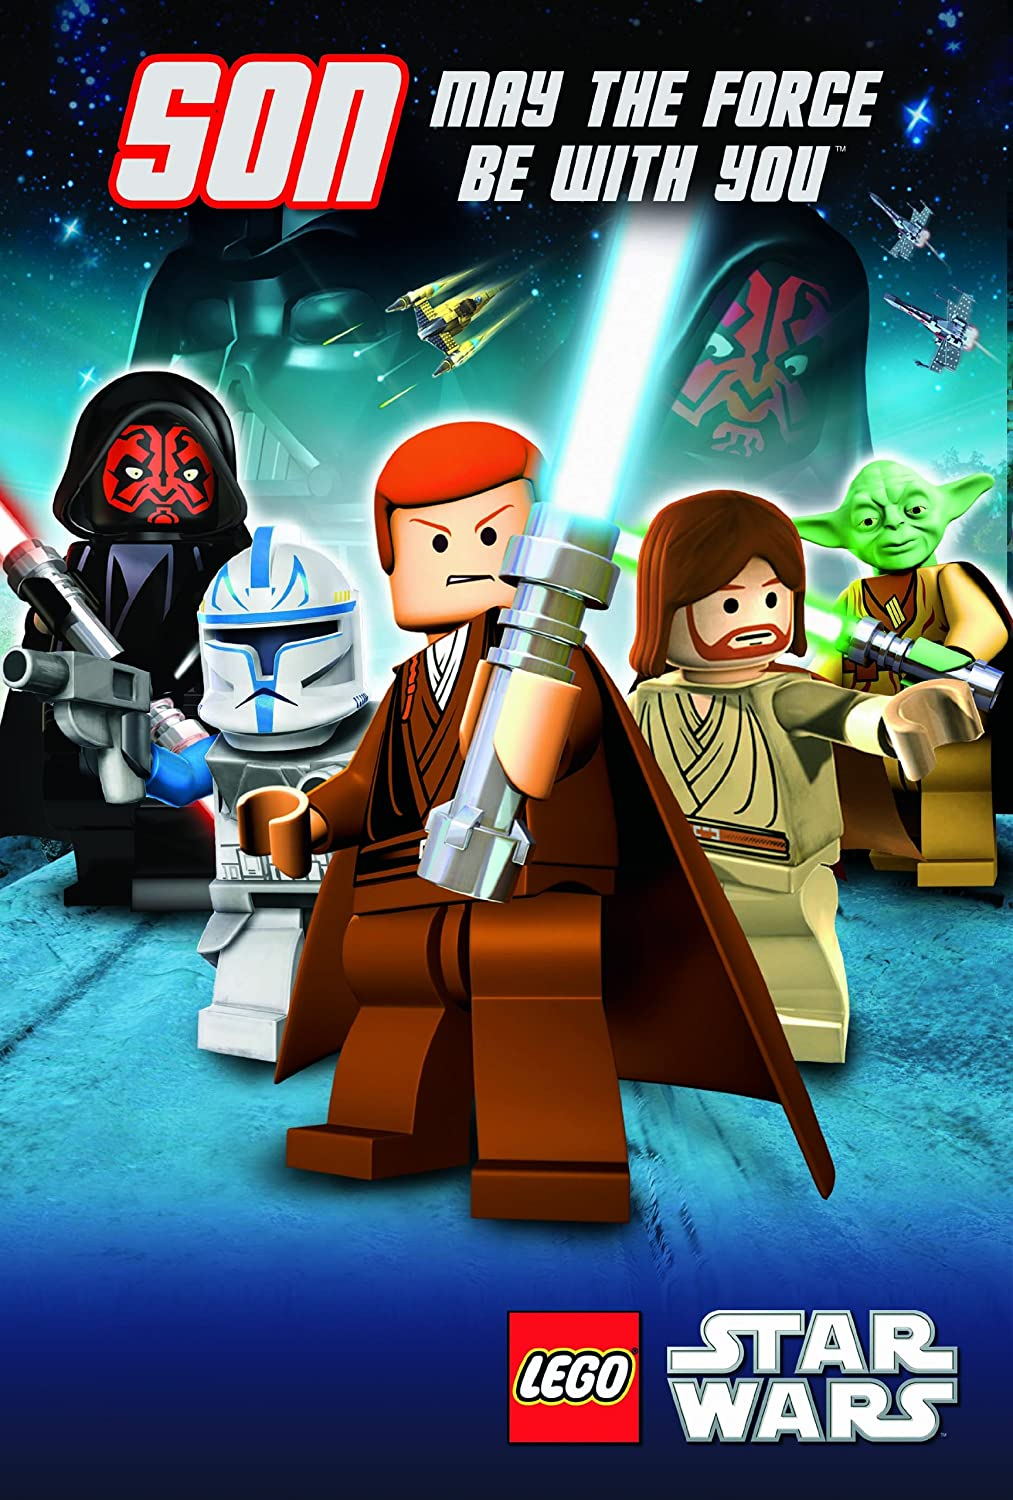 Lego Star Wars Son Greeting Card Amazoncouk Office Products – Lego Star Wars Birthday Cards